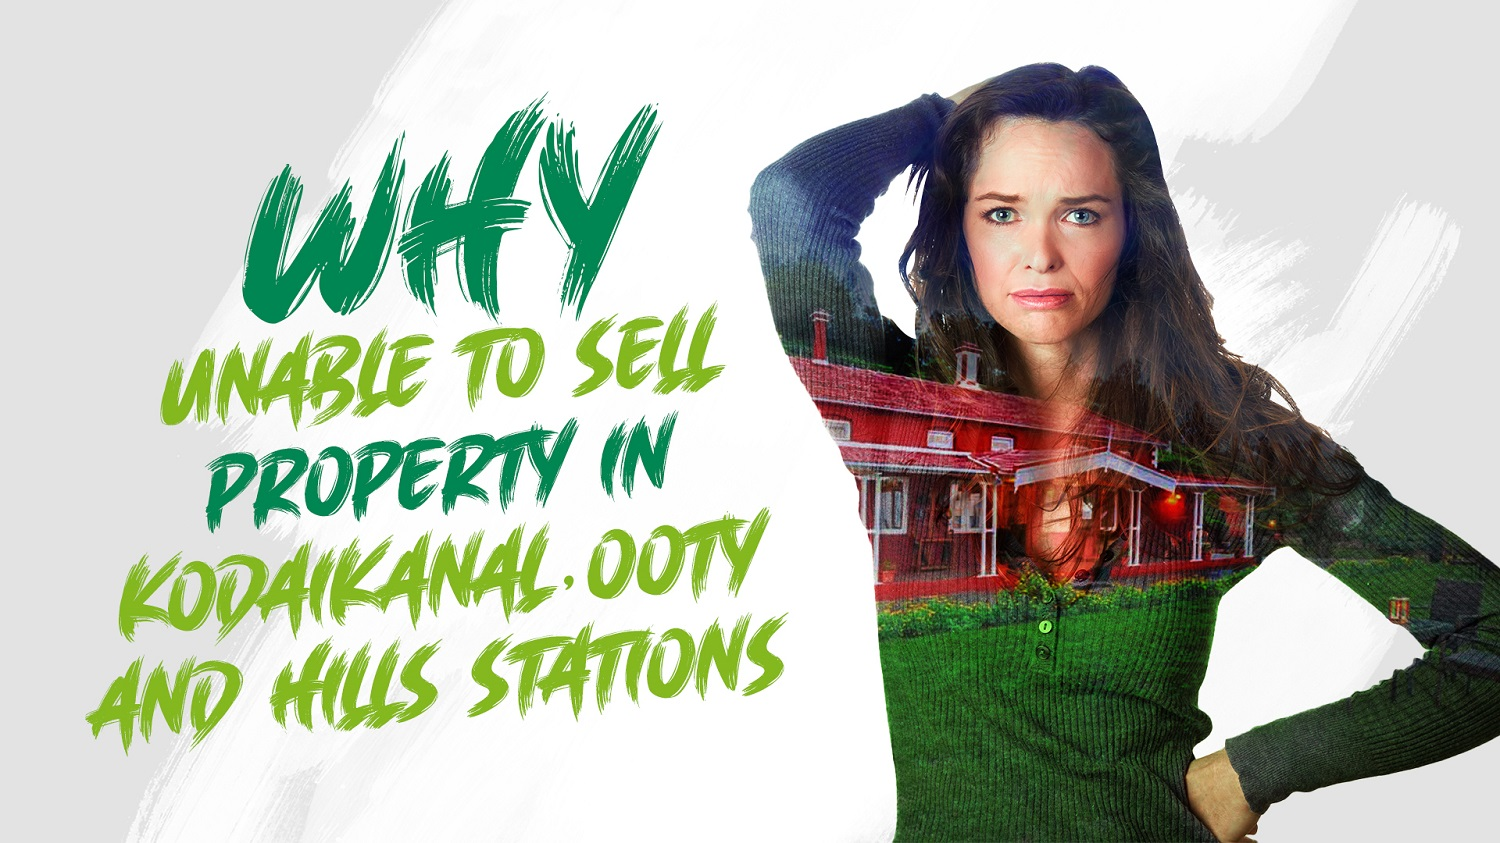 Why Unable to sell Property in Kodaikanal, Ooty and Hills Stations?